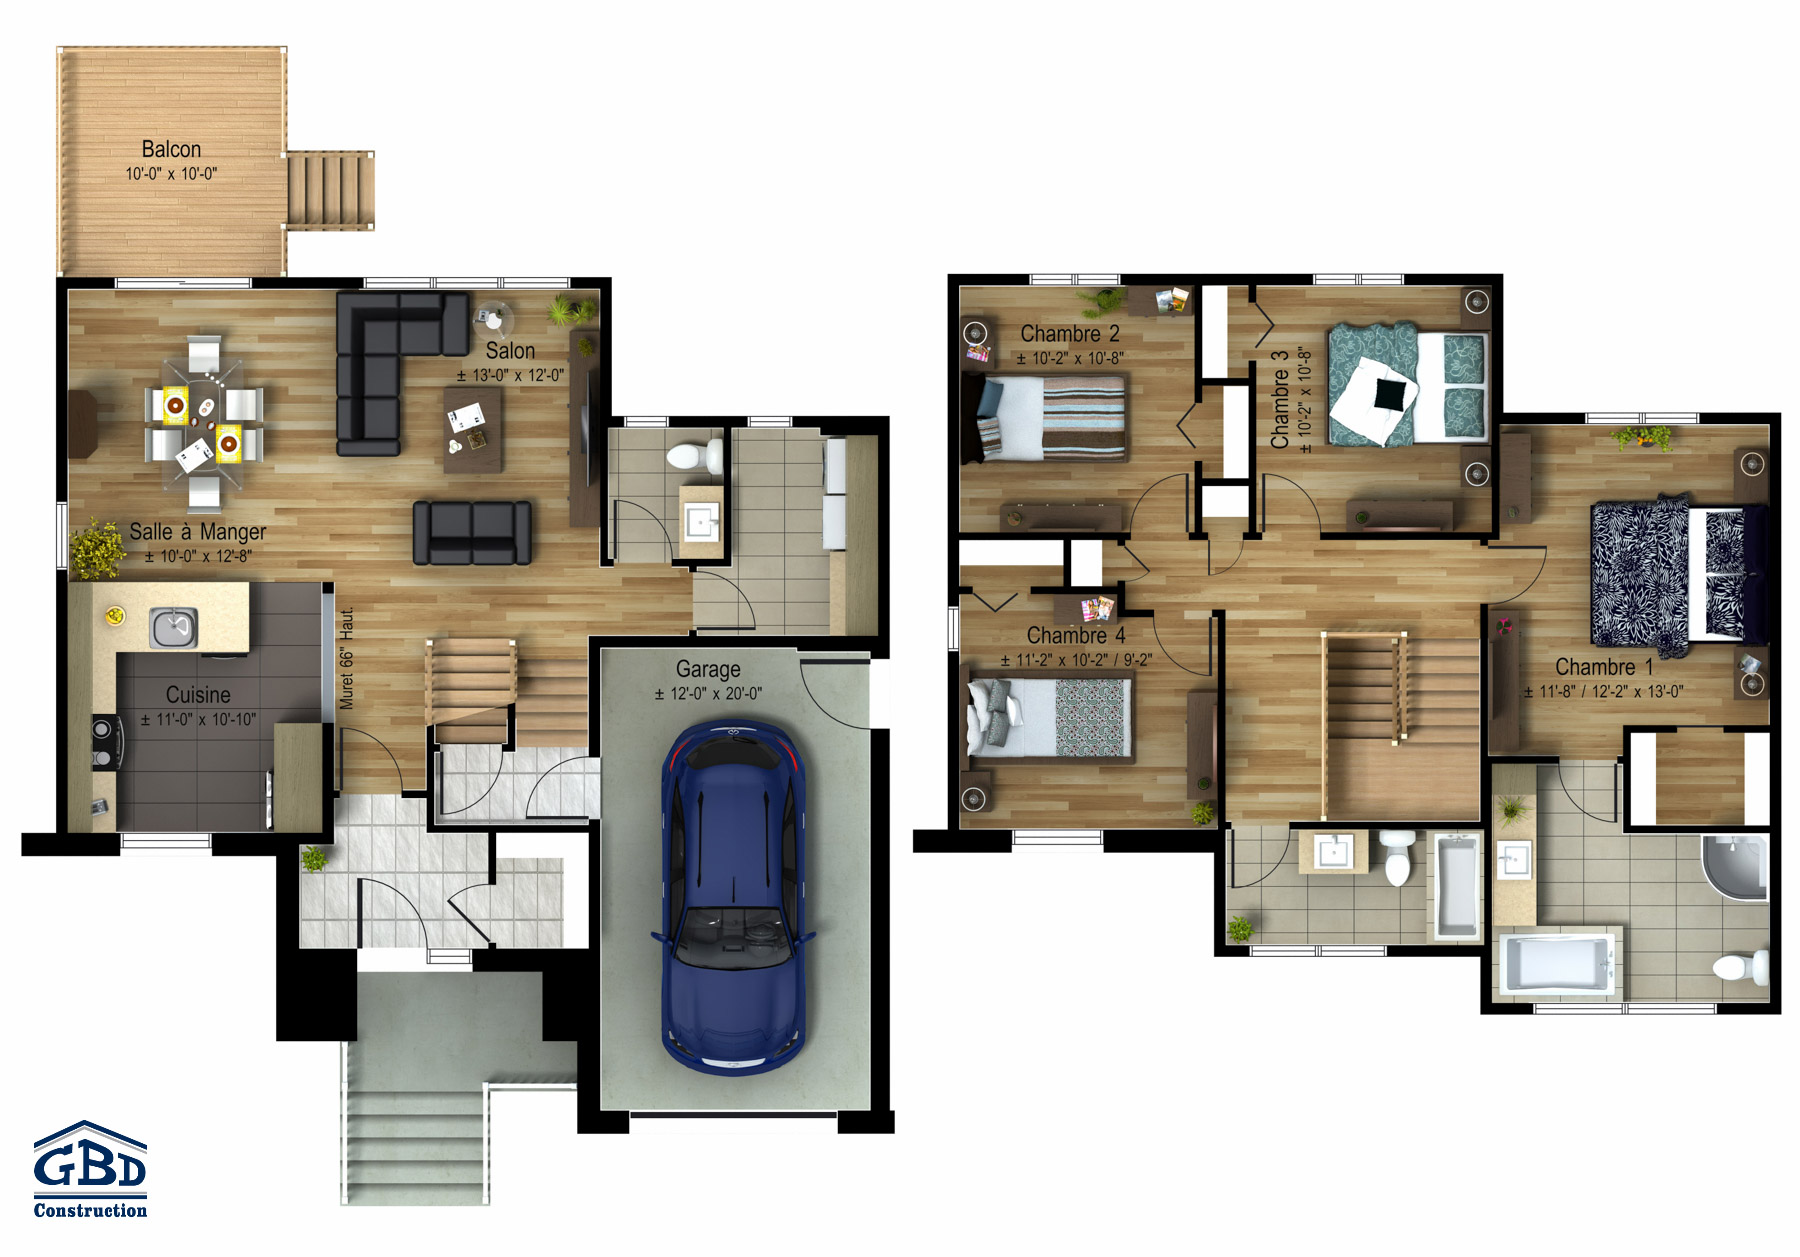 Volution maison neuve deux tages de type cottage for Plan de loft moderne